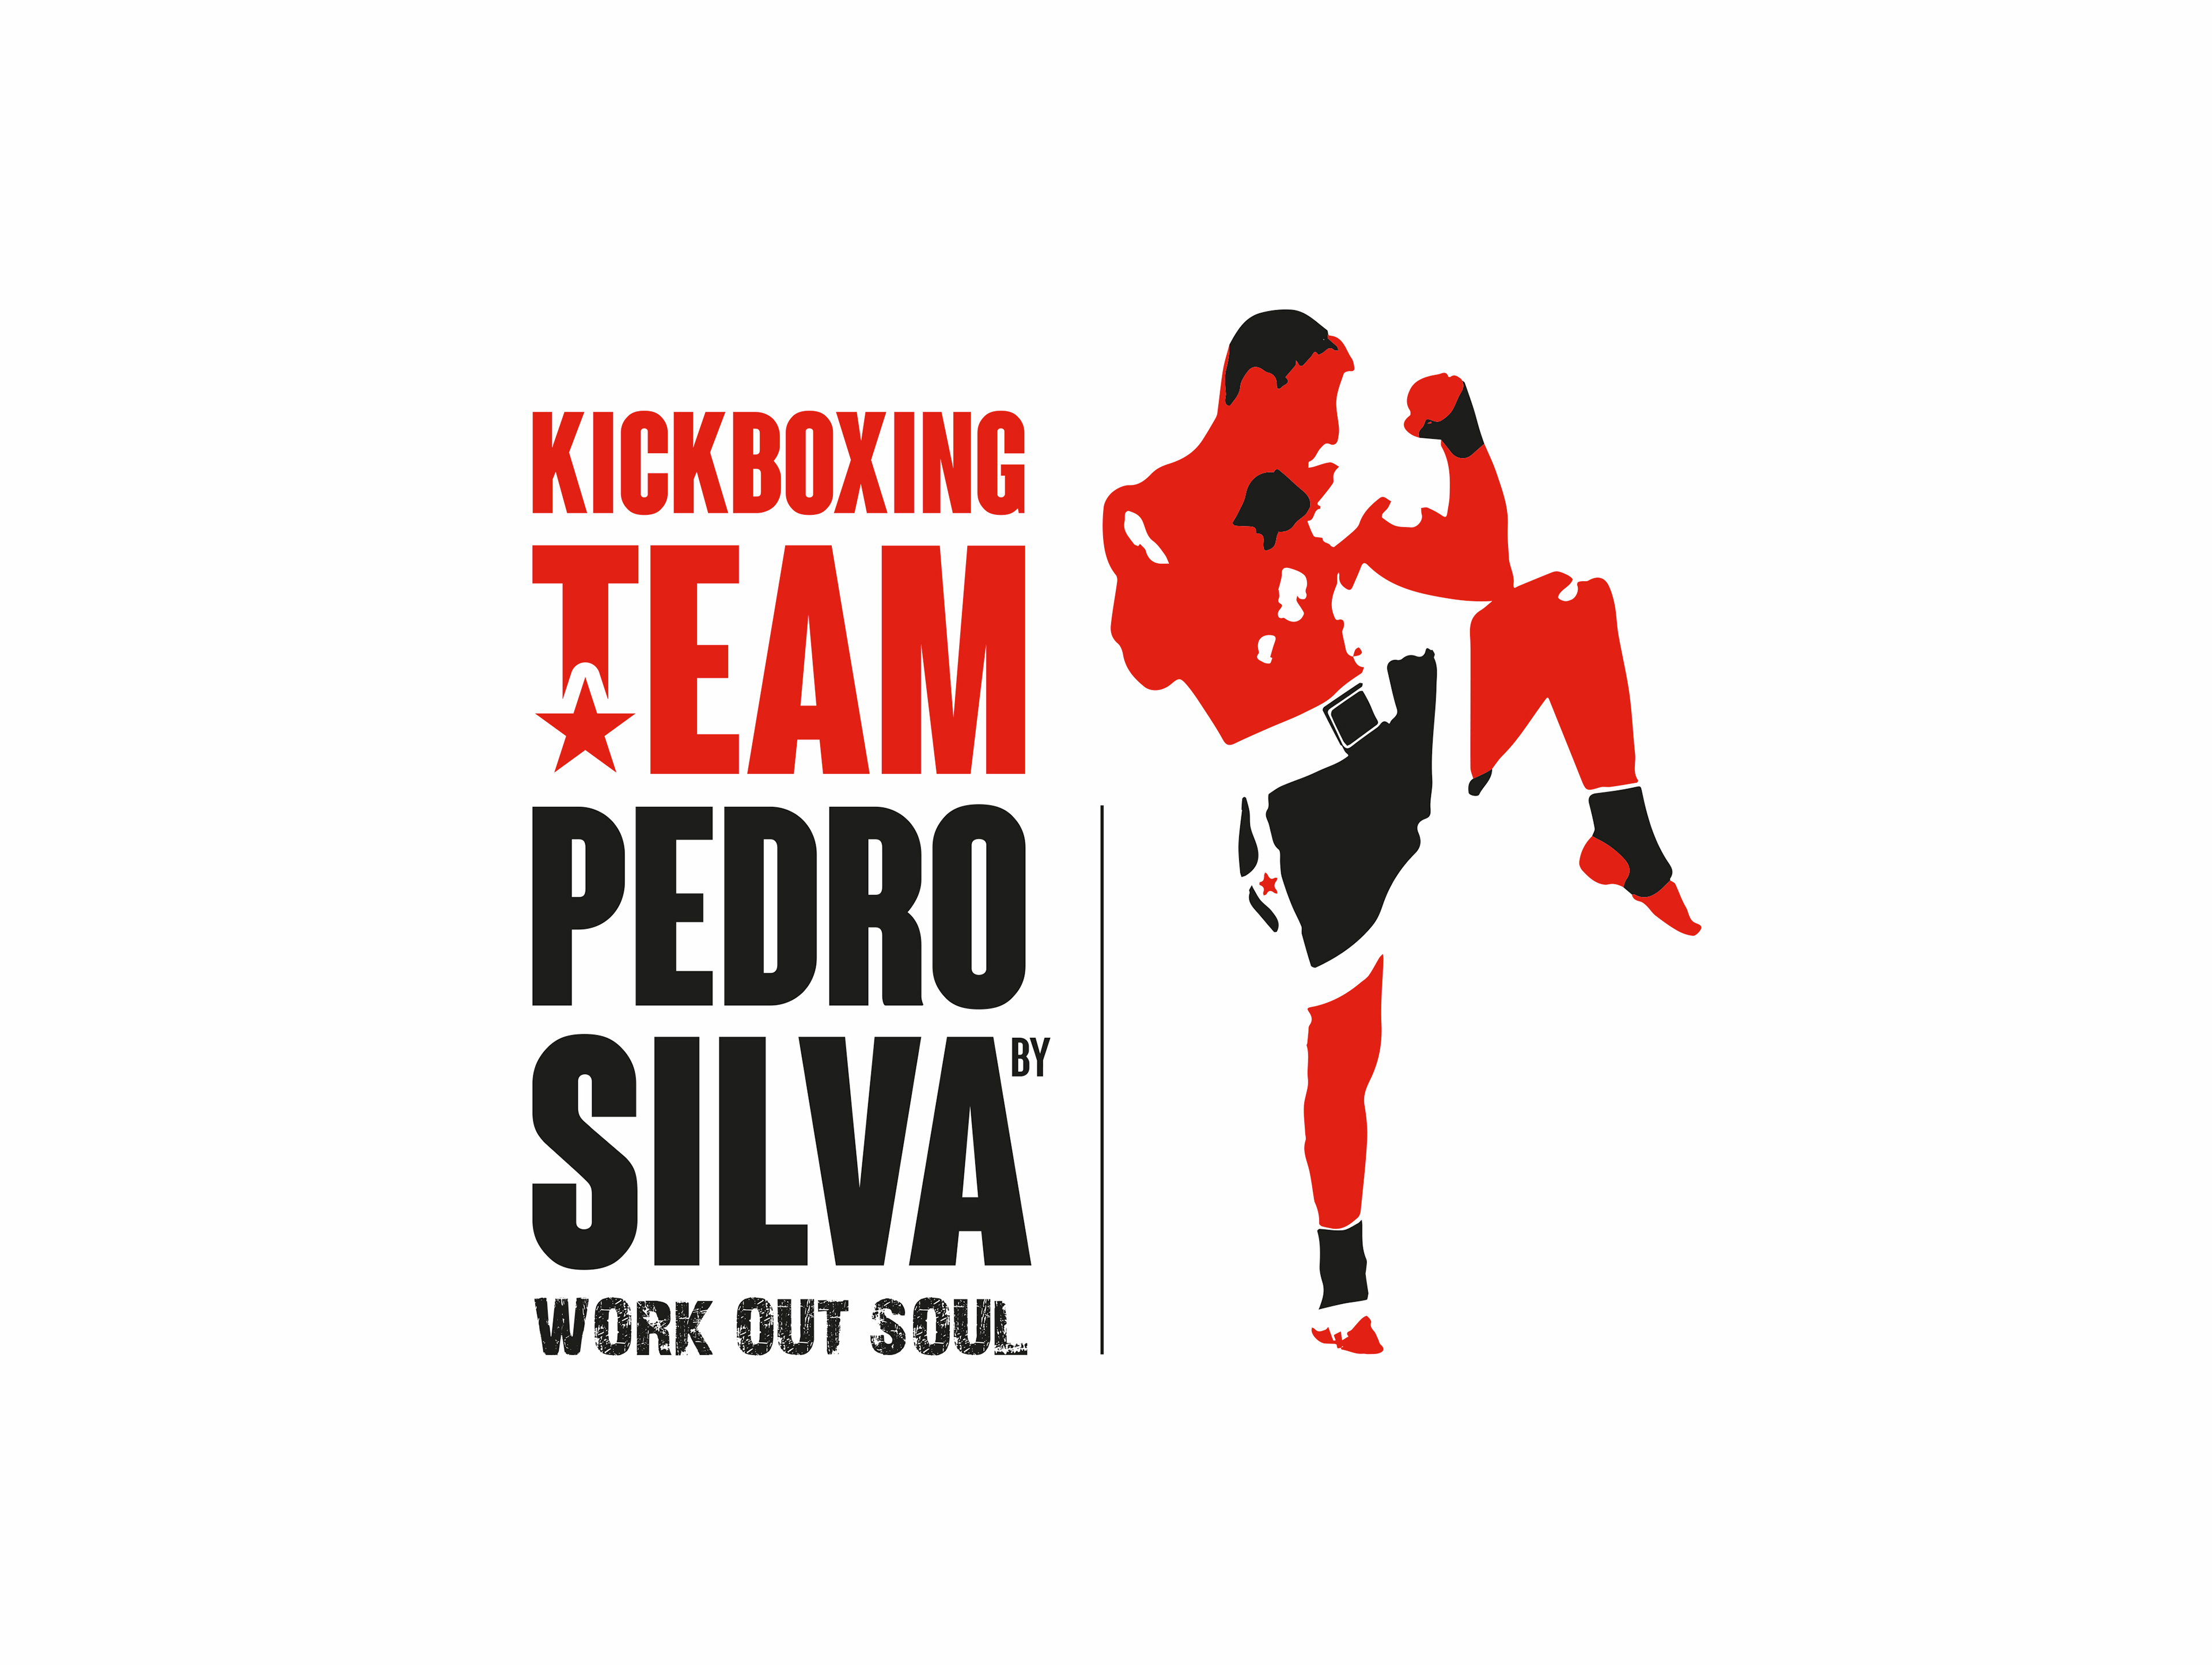 pedro silva kickboxing team logo on behance rh behance net logos kickboxing kick boxing logo